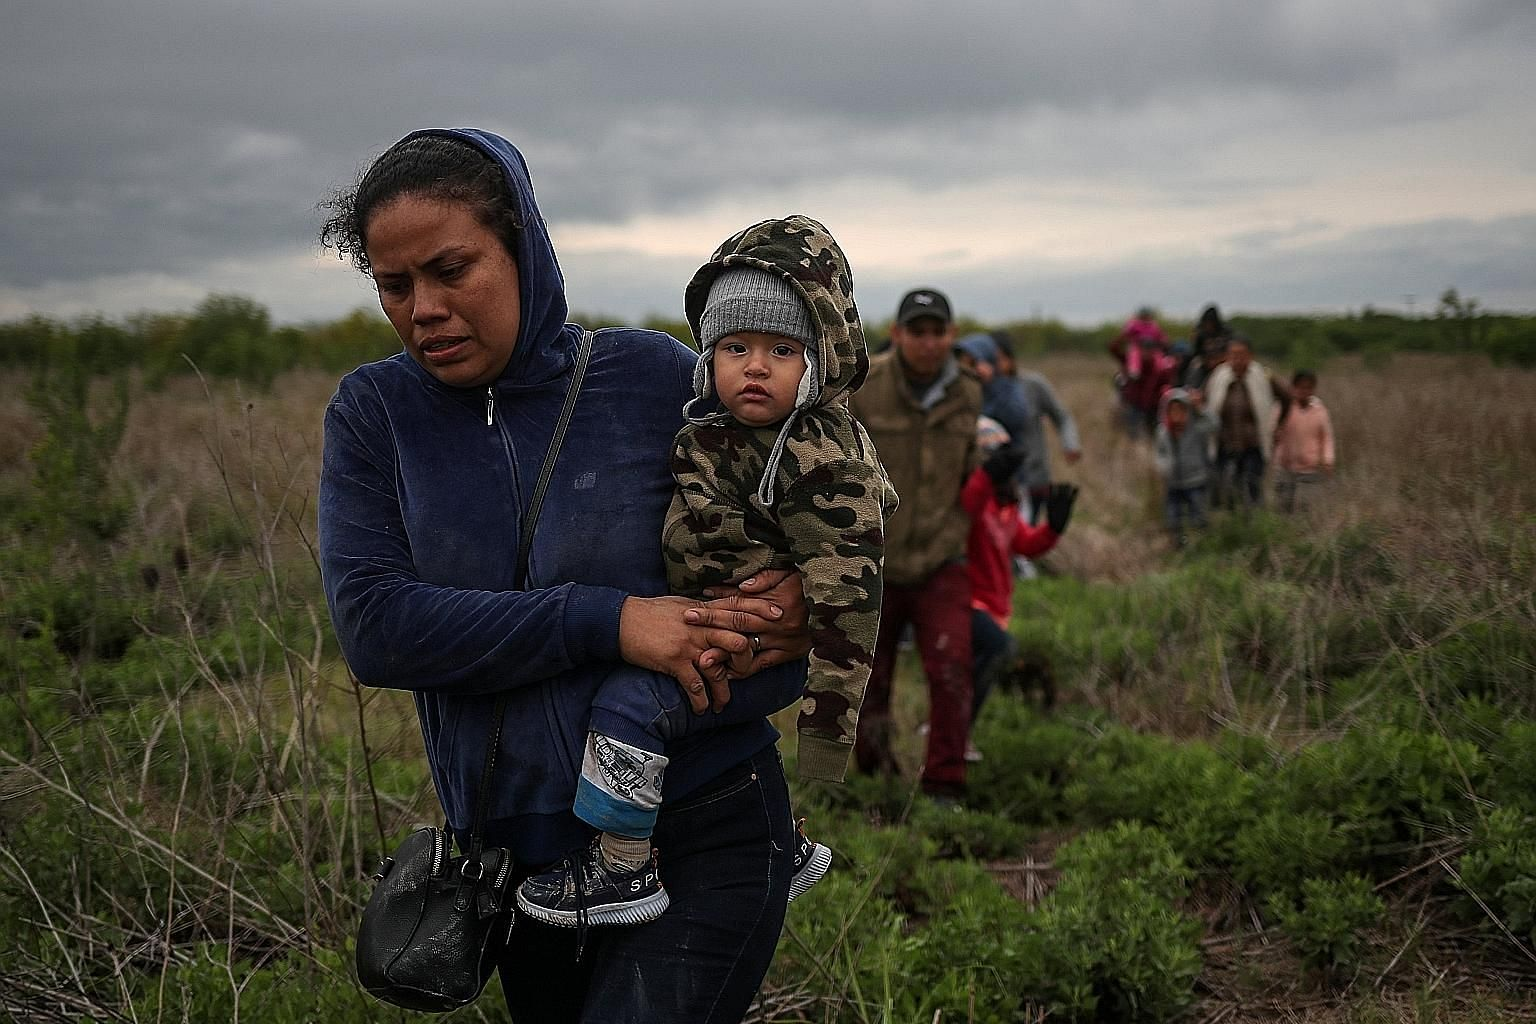 A mother and child from El Salvador, together with other asylum seekers, after crossing the Rio Grande illegally into the US from Mexico late last month.